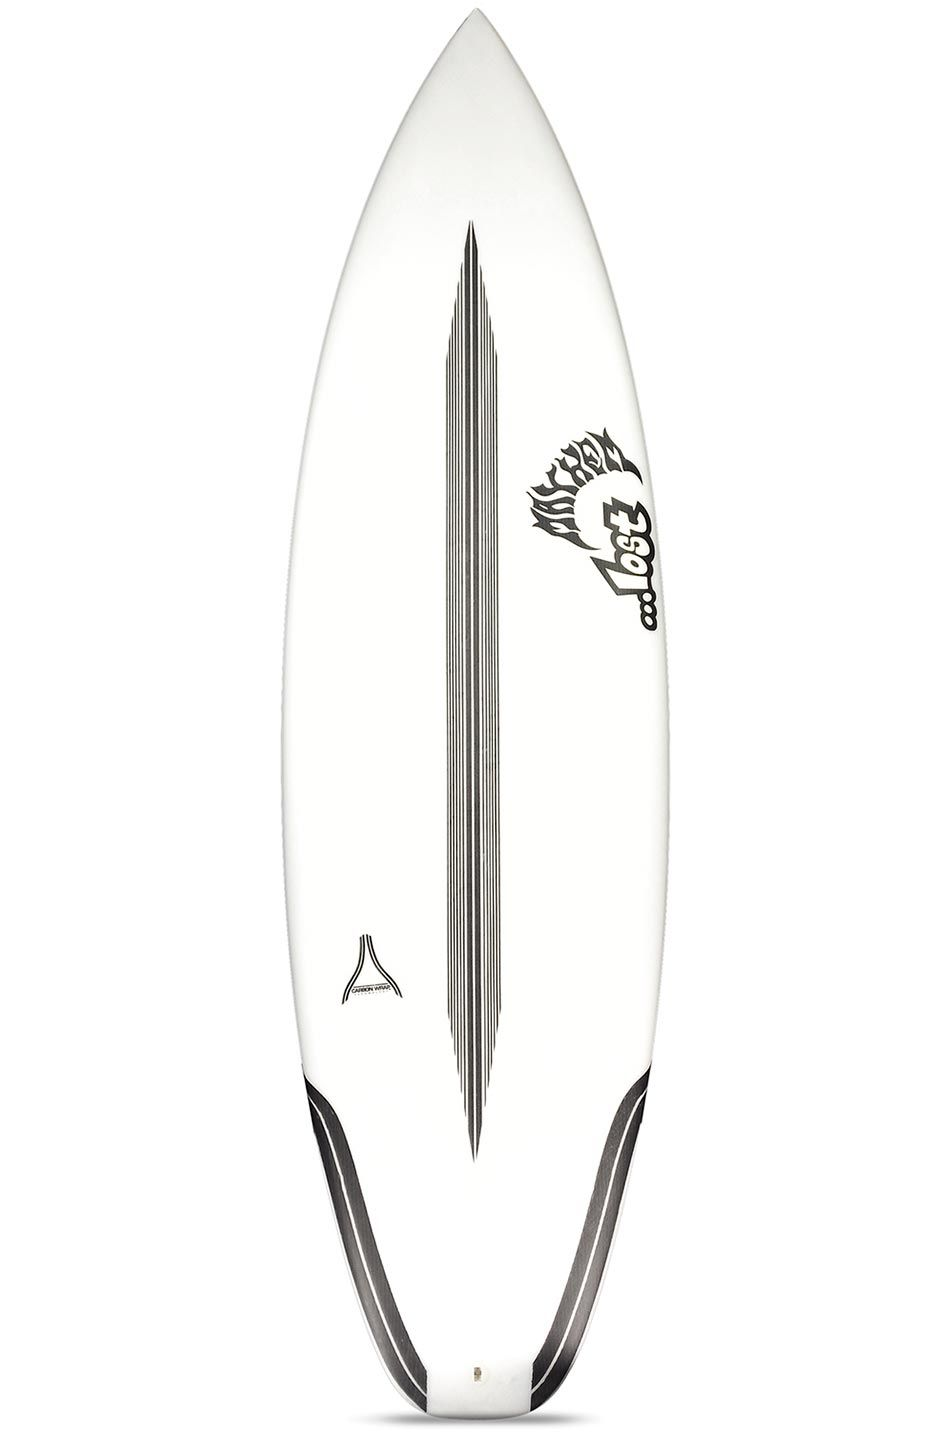 Prancha Surf Lost BABY BUGGY CW 6'2 Squash Tail - White FCS II 6ft2